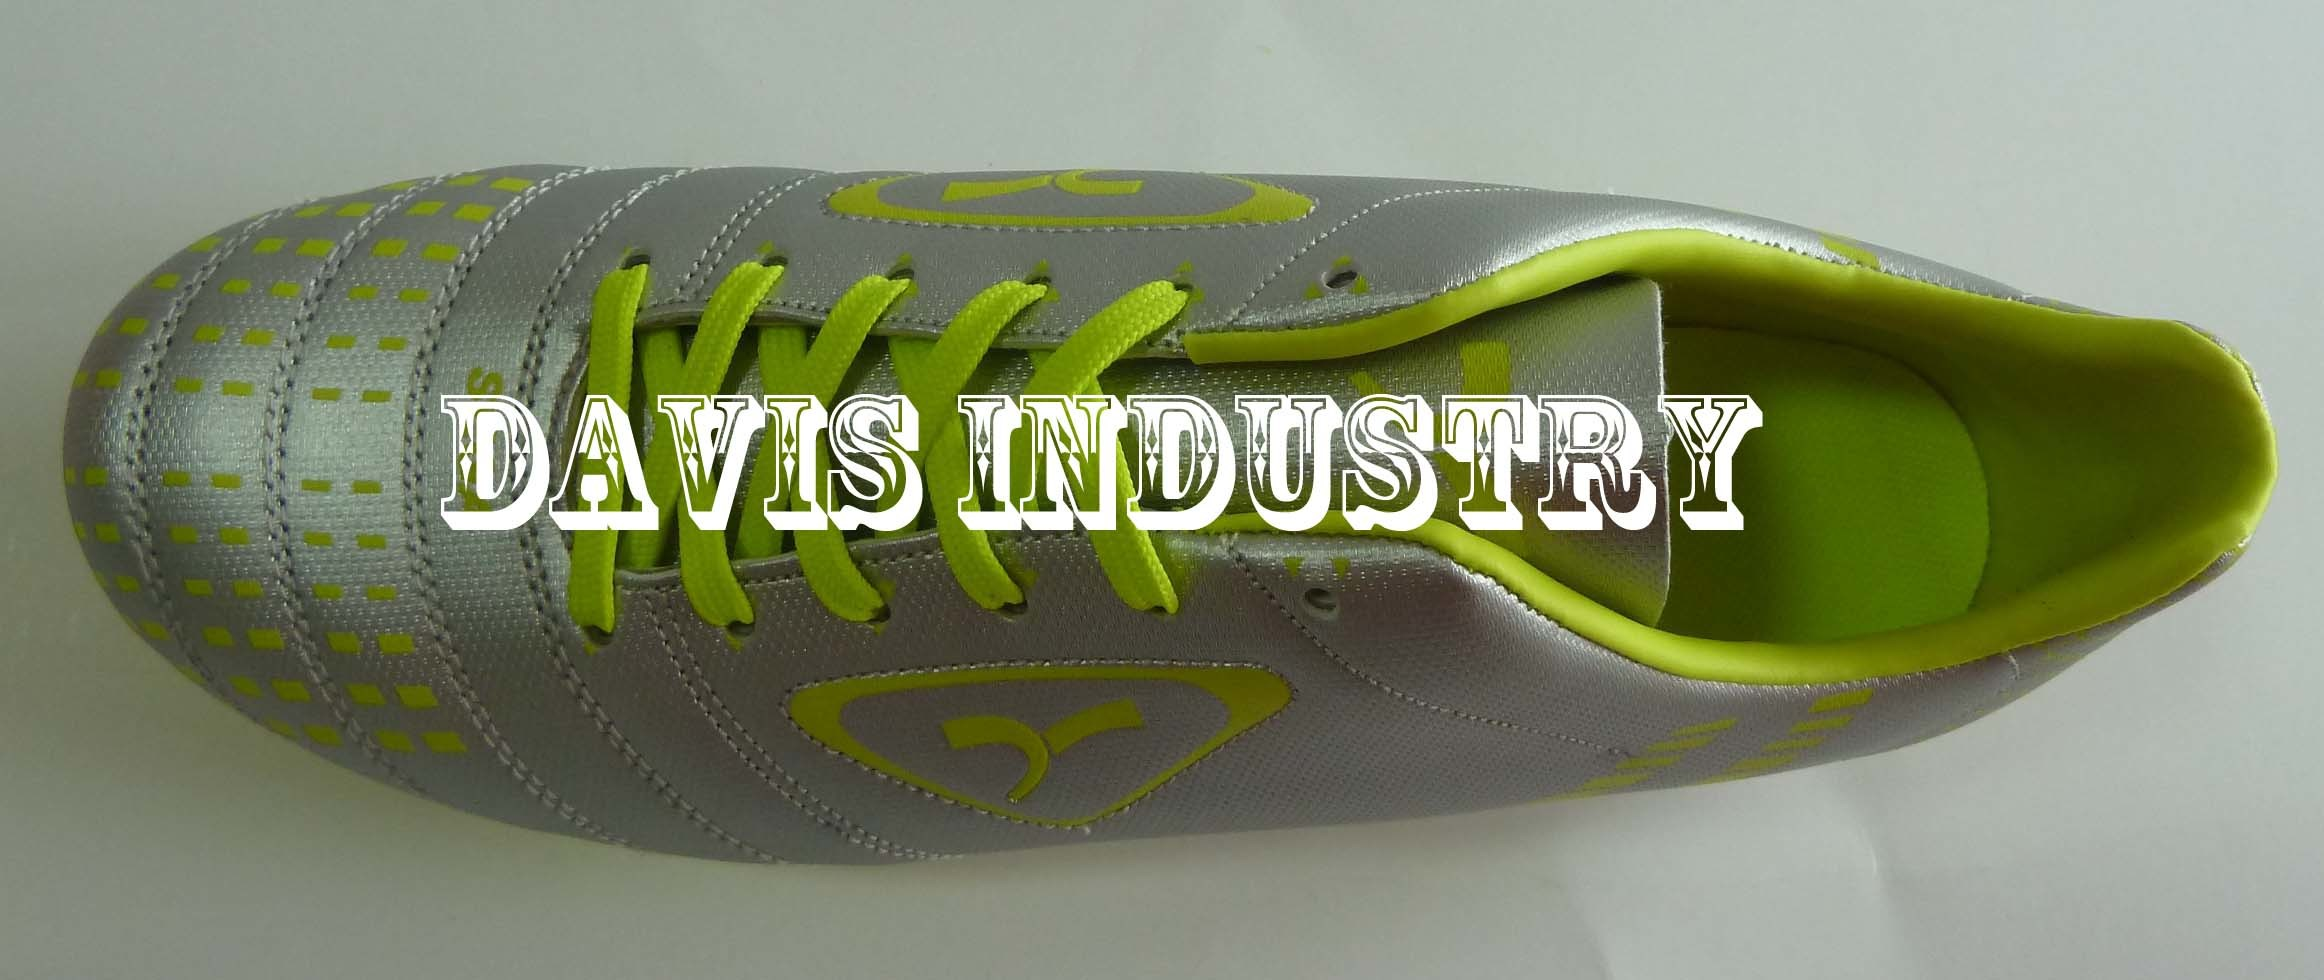 Small MOQ Factory Offered Hot Selling New Design Style Soccer Cleats Boots Football Turf Sports Shoes with High Quality and Good Price